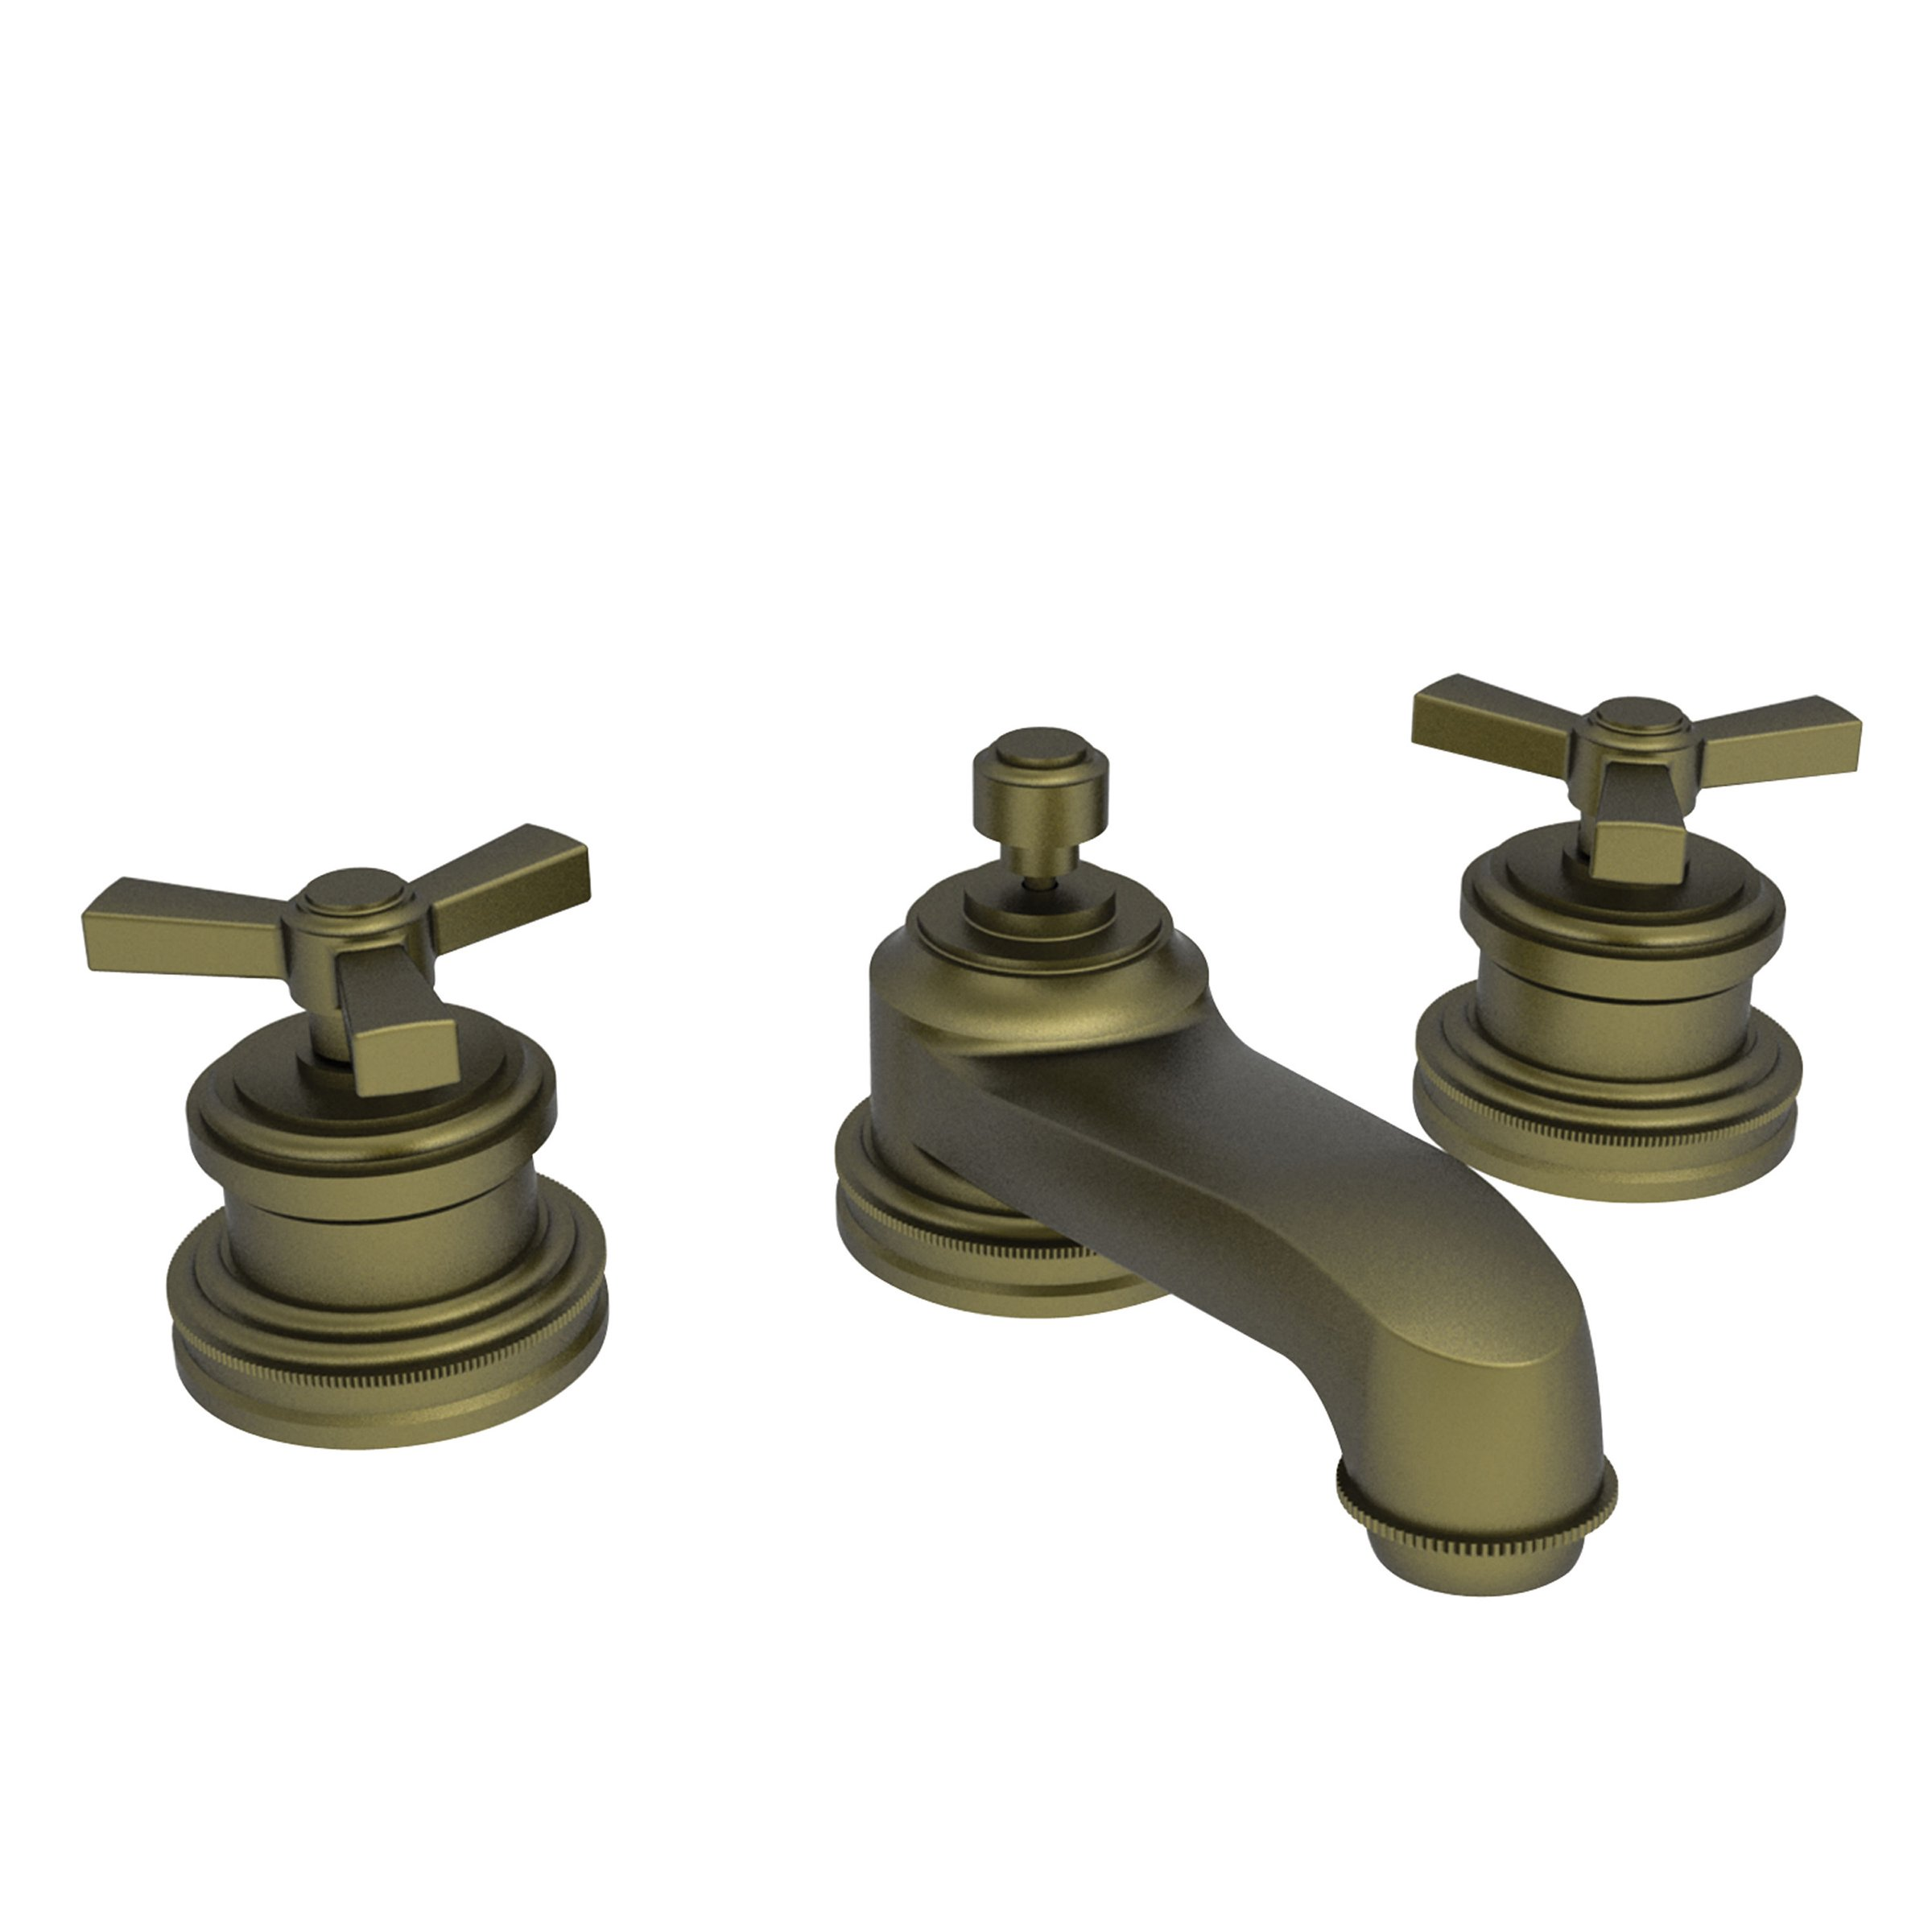 Newport Brass 1600 Widespread Faucet Newport Brass Faucets